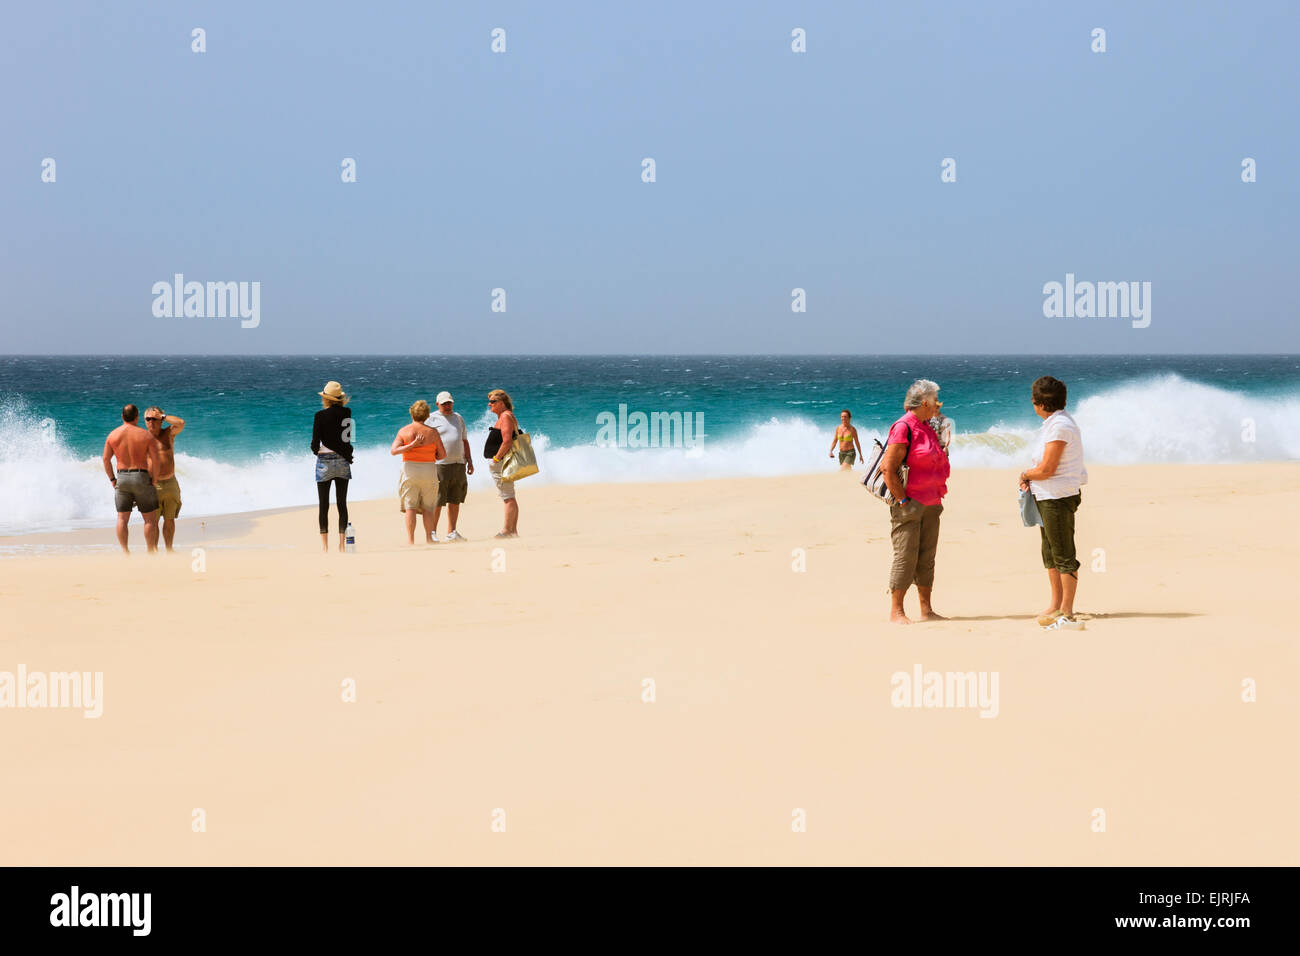 Tourists on sandy beach with rough sea beyond at Praia de Santa Monica, Boa Vista, Cape Verde Islands, Africa - Stock Image